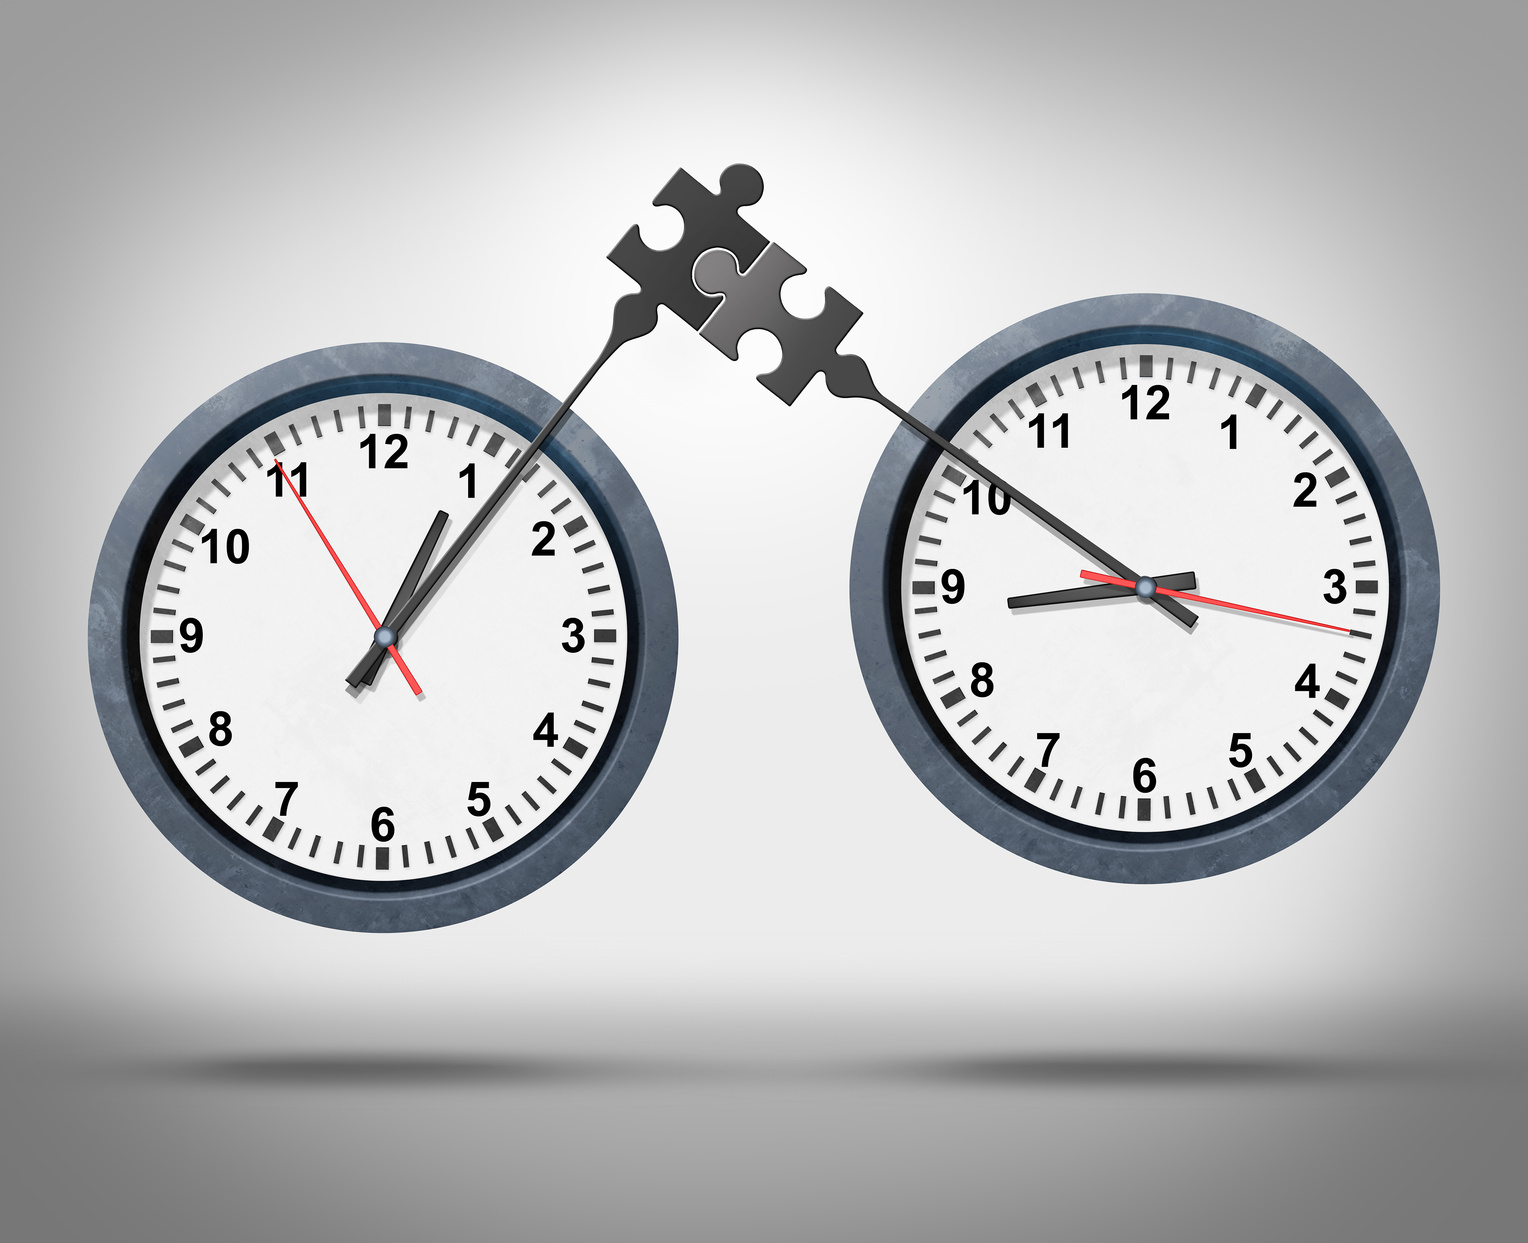 Time management concept as two clocks with minute hands connecting as a puzzle representing global business appointment schedules in sync or synchronization between different time zones as a corporate schedule metaphor.